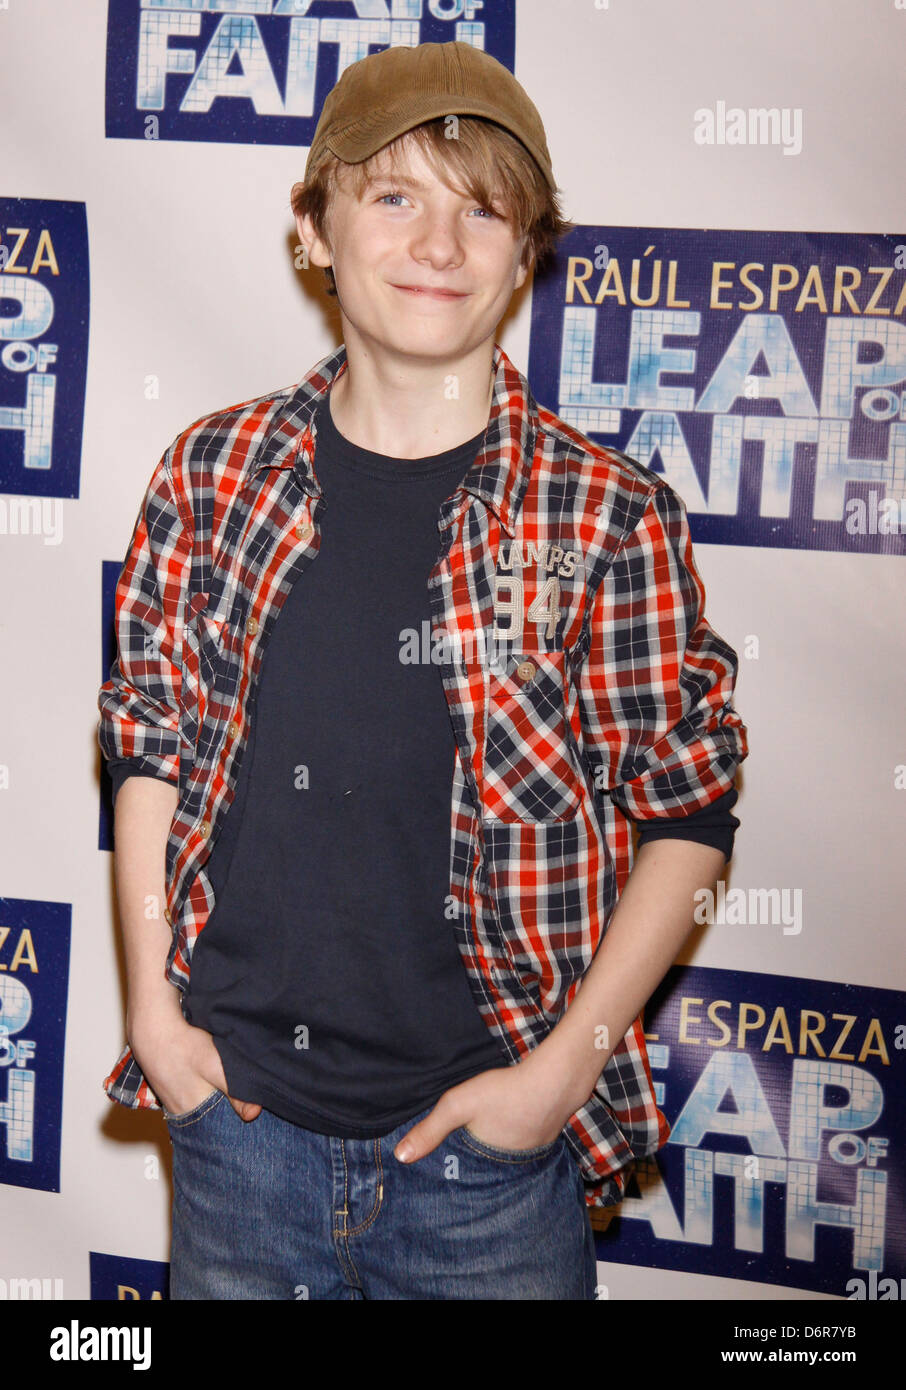 Talon Ackerman Photocall with the cast of the Broadway musical 'Leap Of Faith' at the New 42nd Street Studios - Stock Image